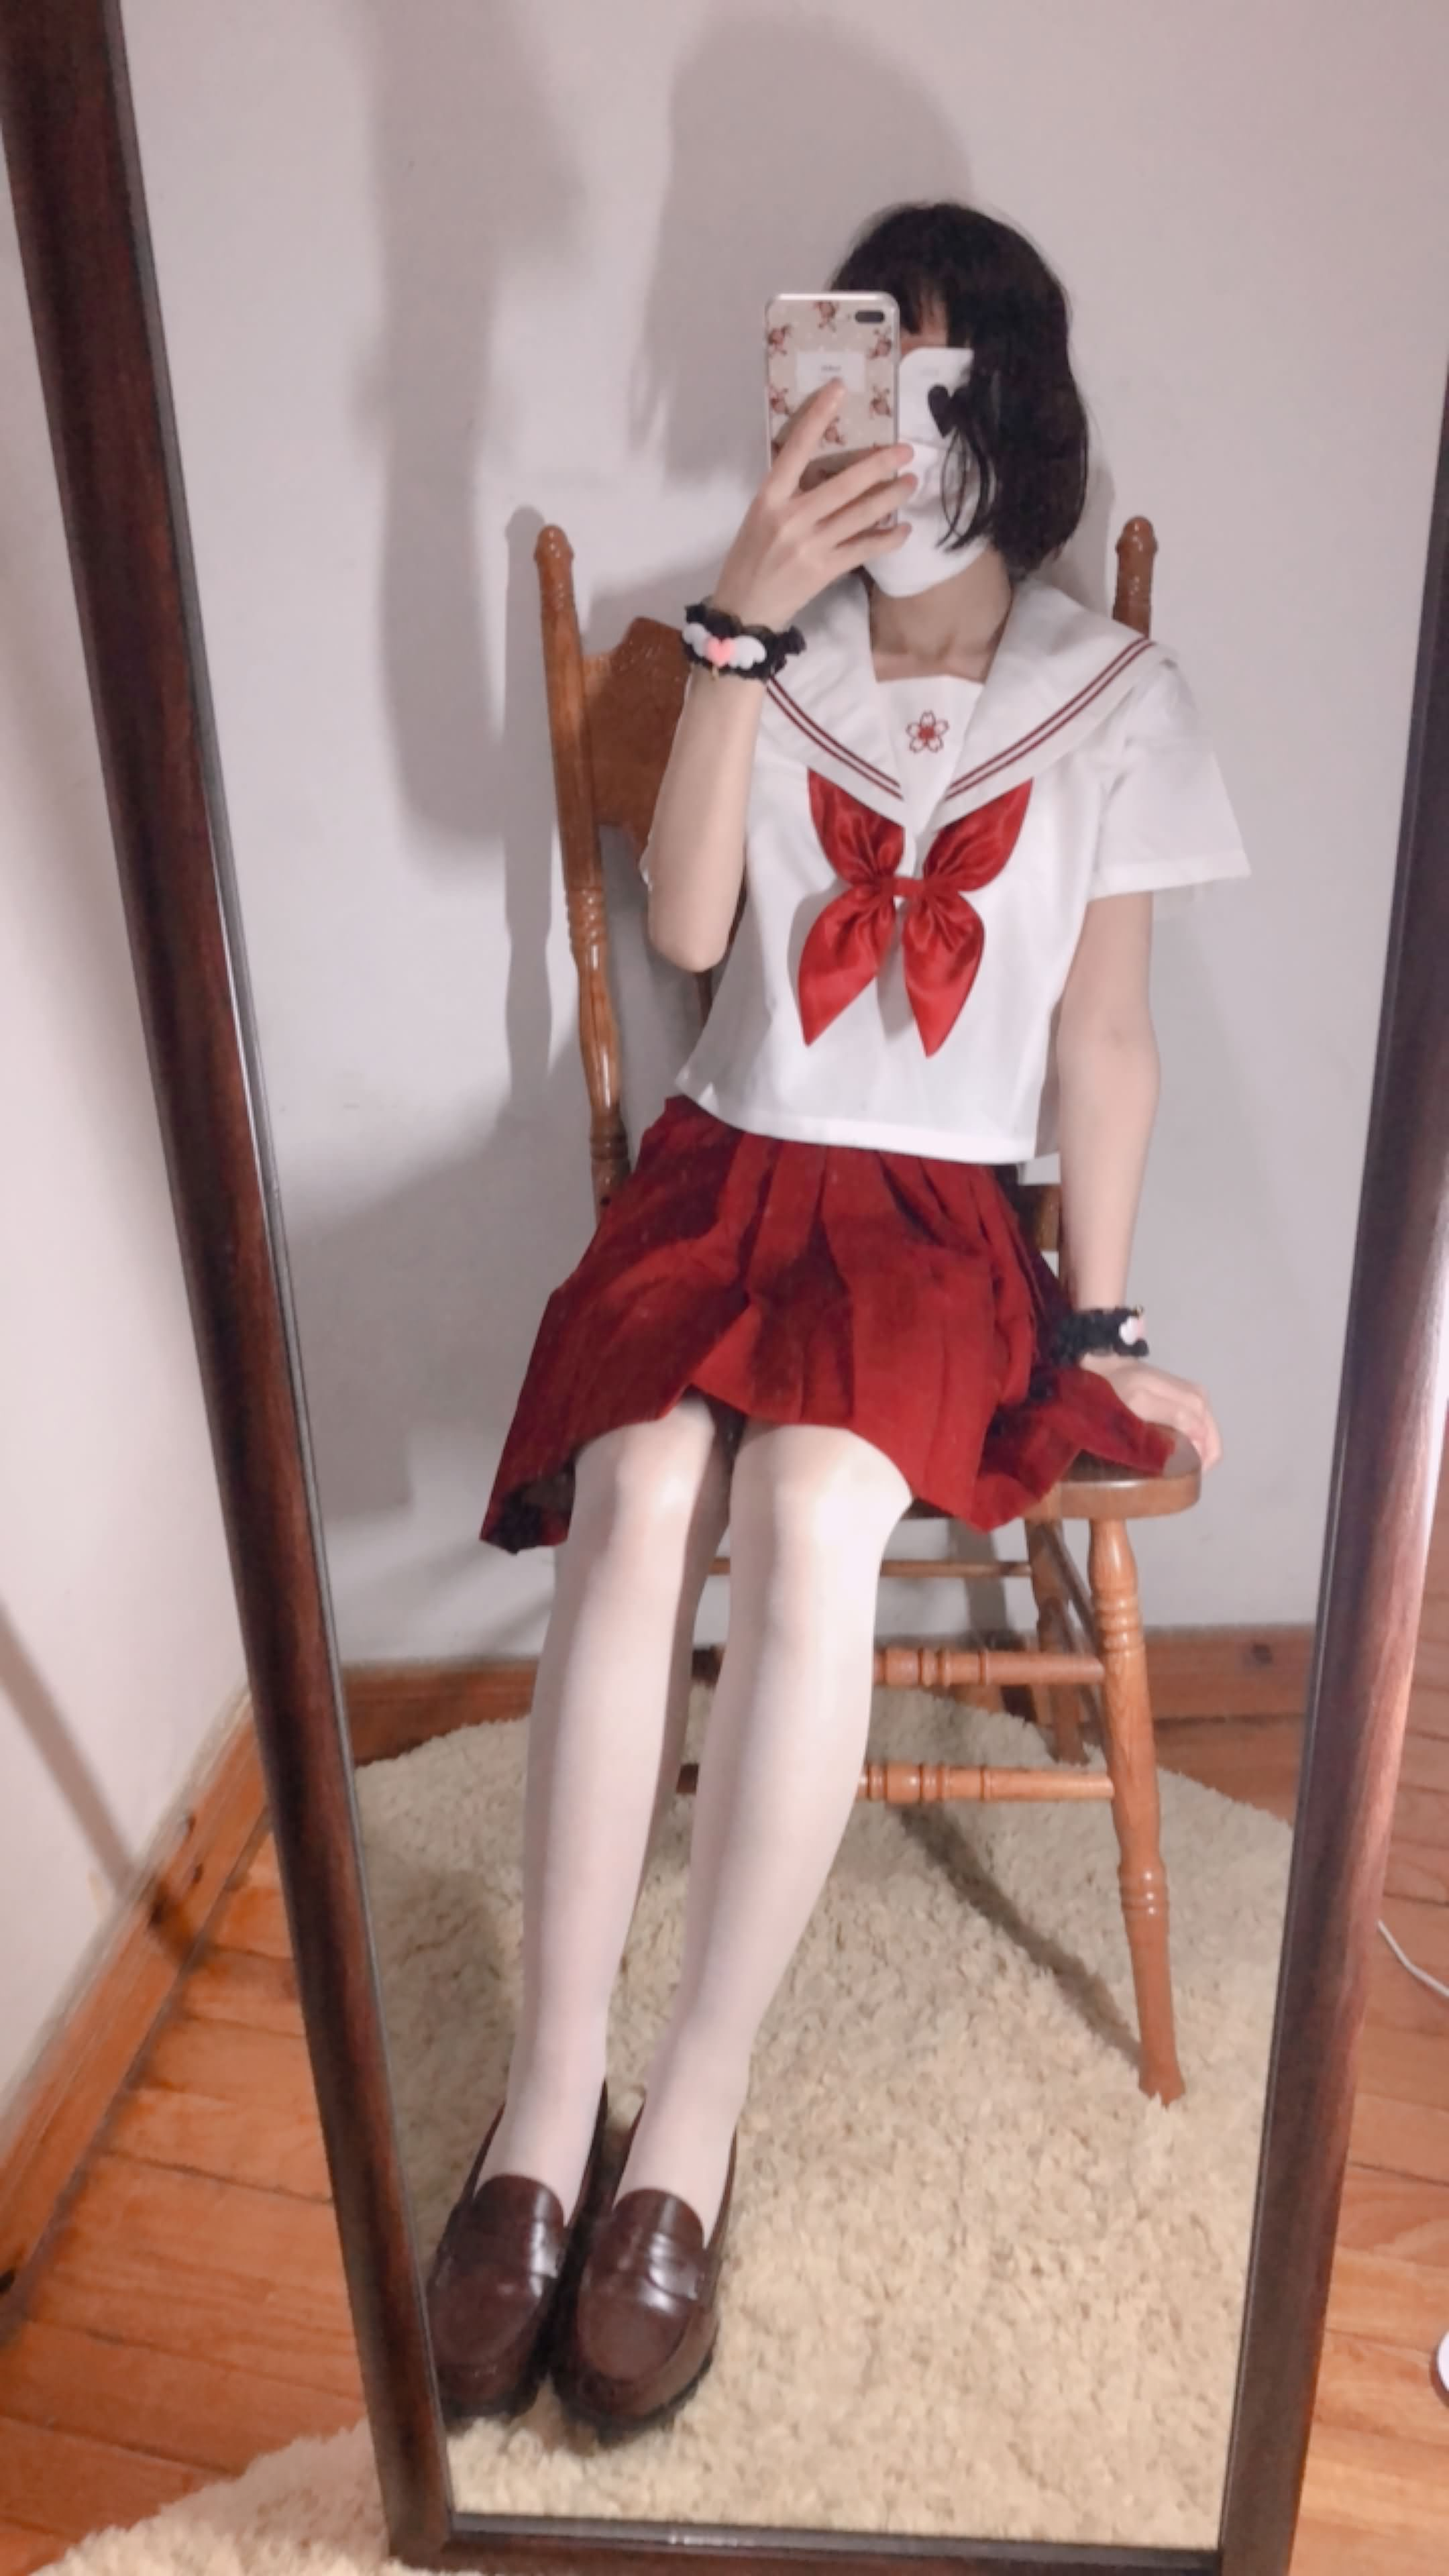 19 - Cosplay red JK uniform white stockings sweet pussy butt 小结巴-红色jk制服白丝 95P